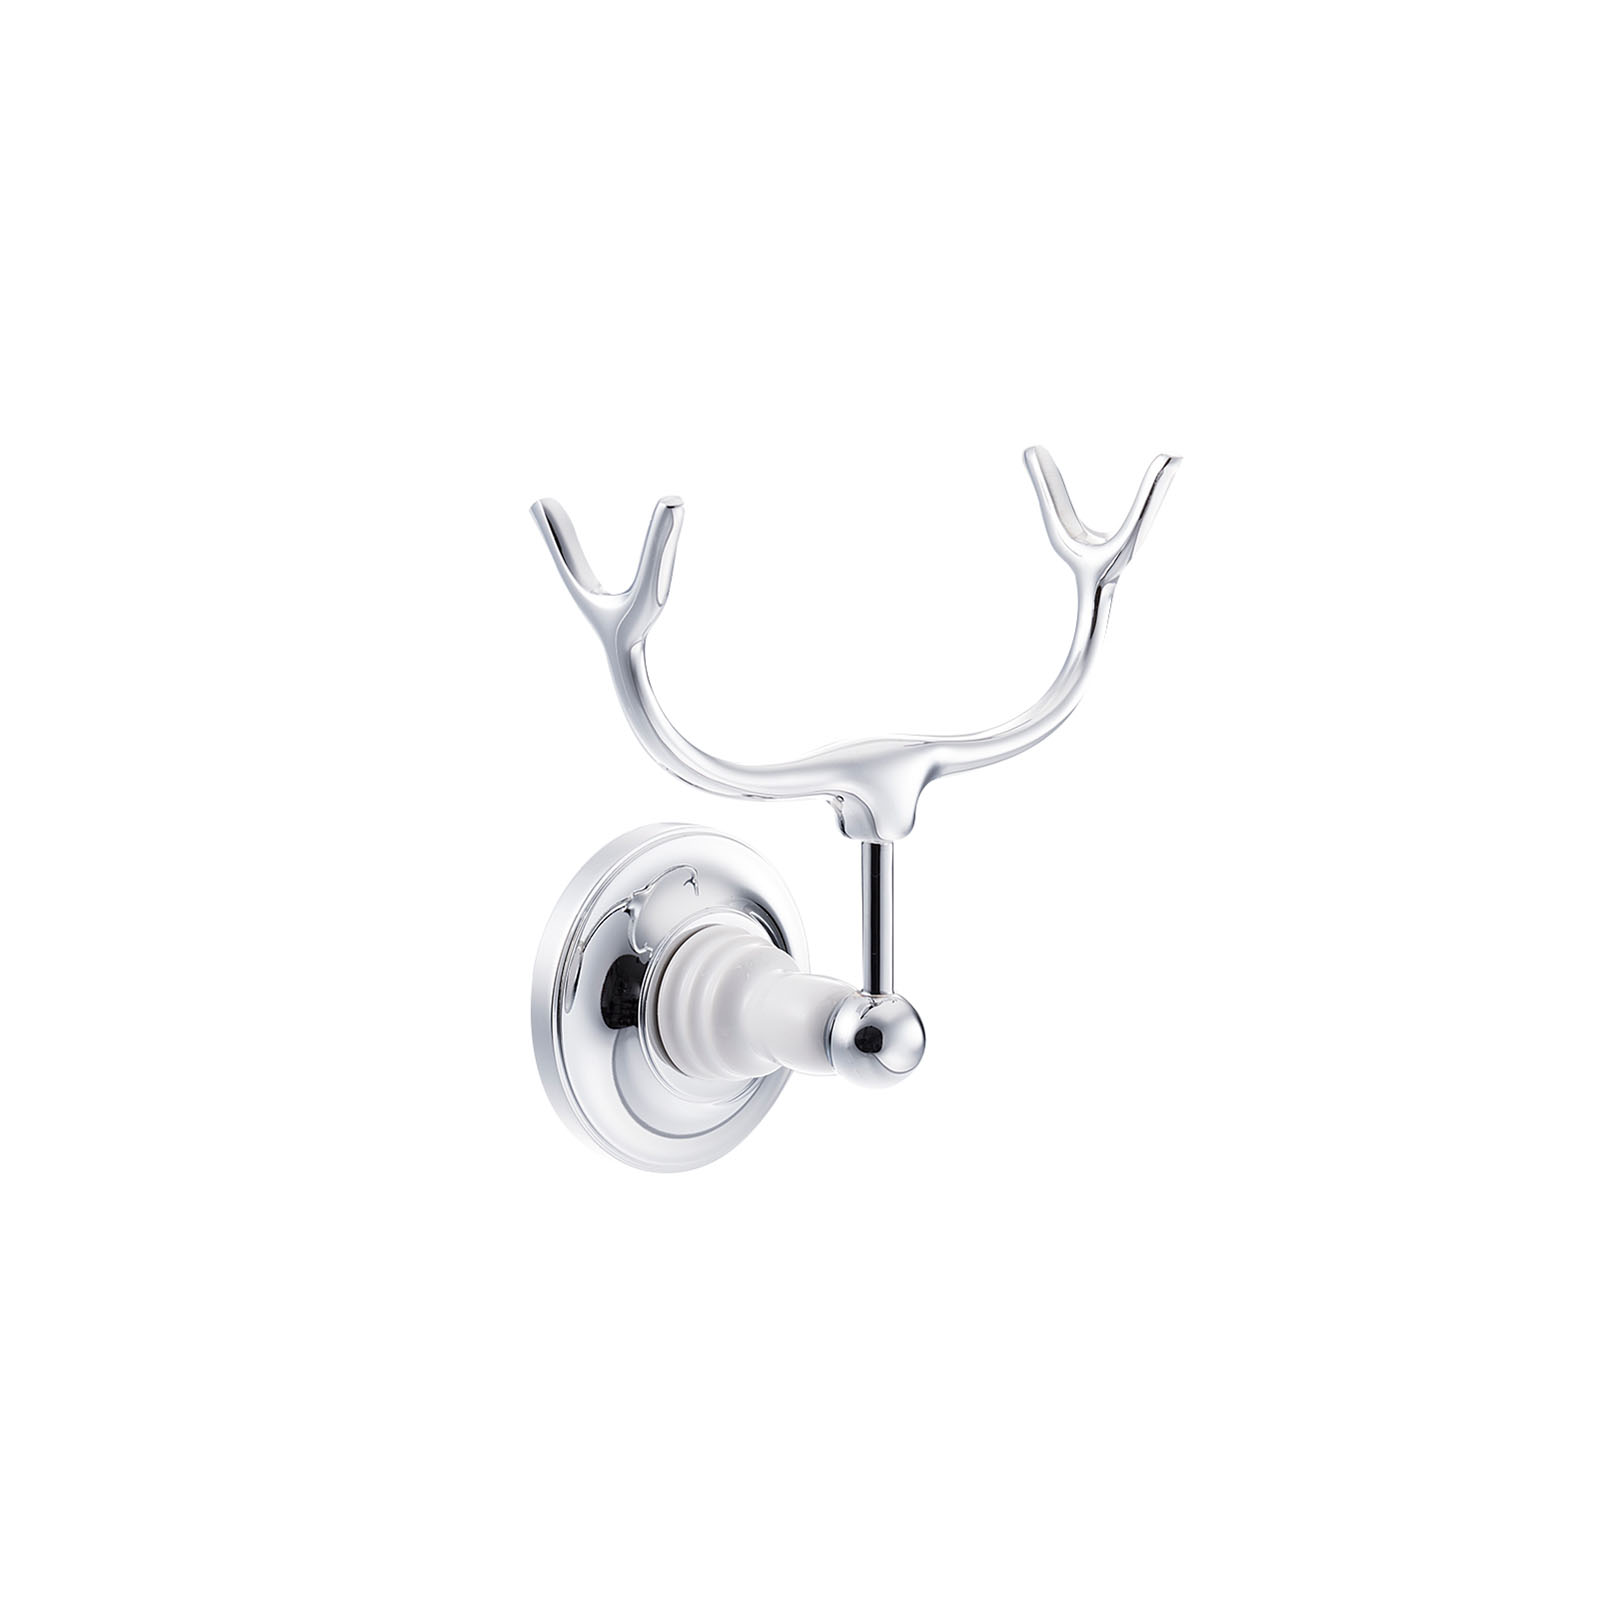 Picture of Wall Mounted Handshower Cradle